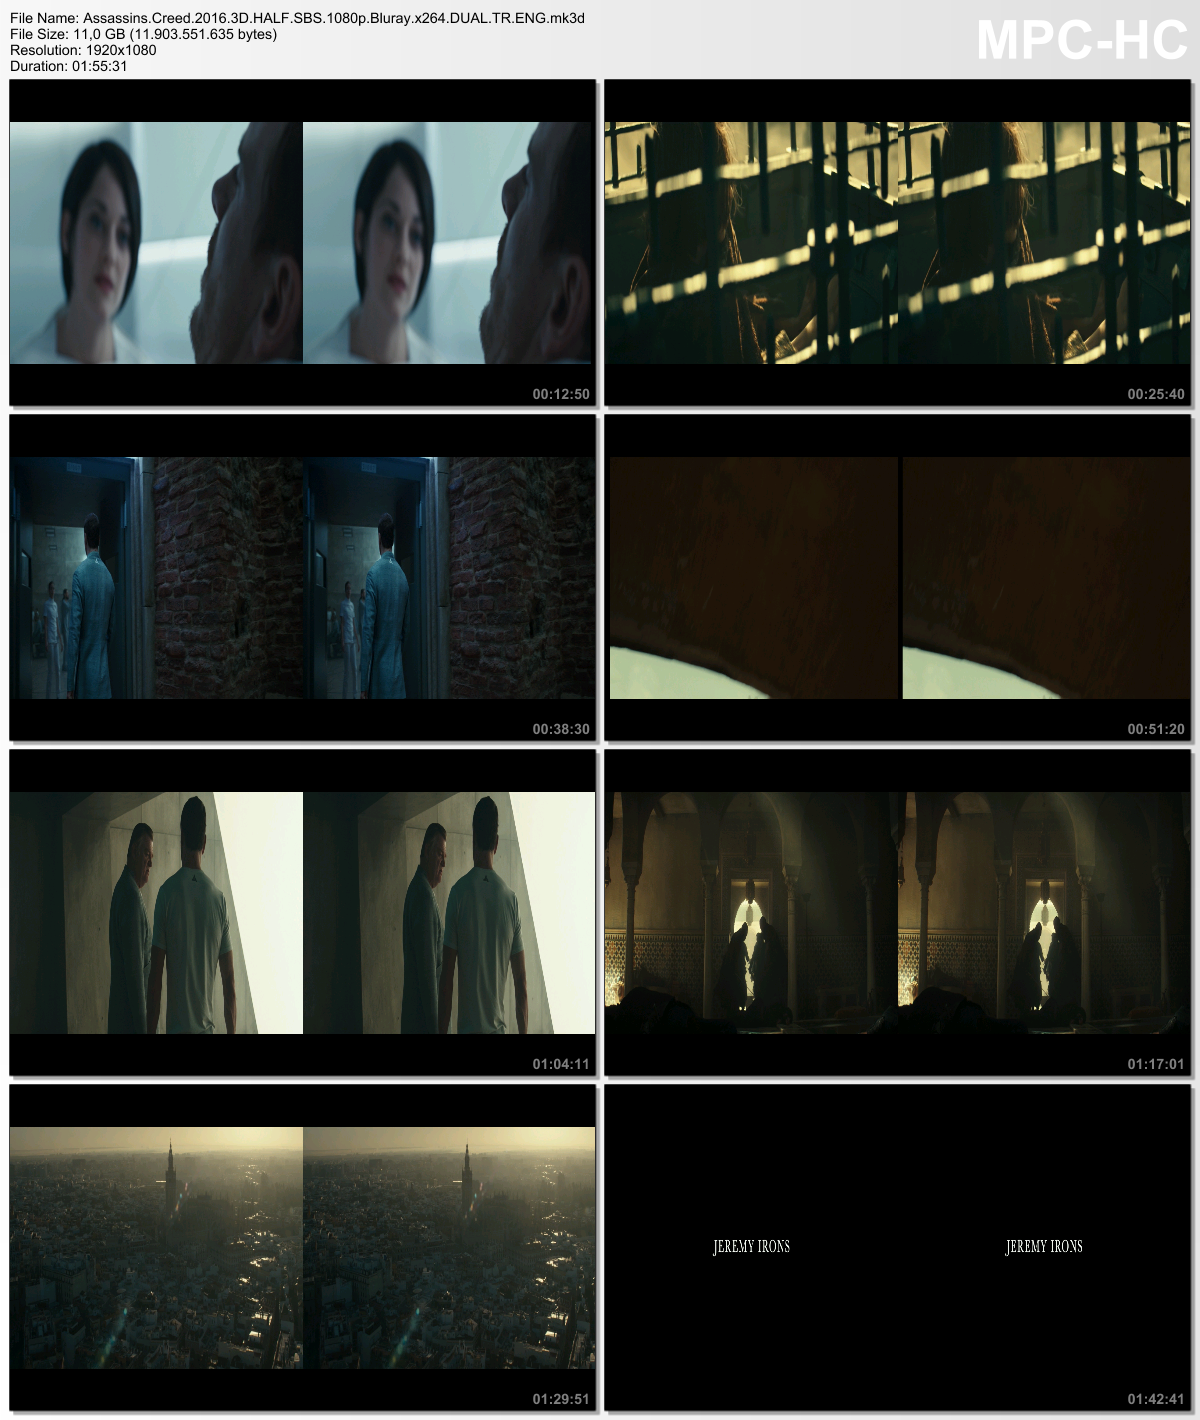 Assassin's Creed 2016 ( 3D BluRay 720p - 1080p - BRRip ) DuaL TR-ENG